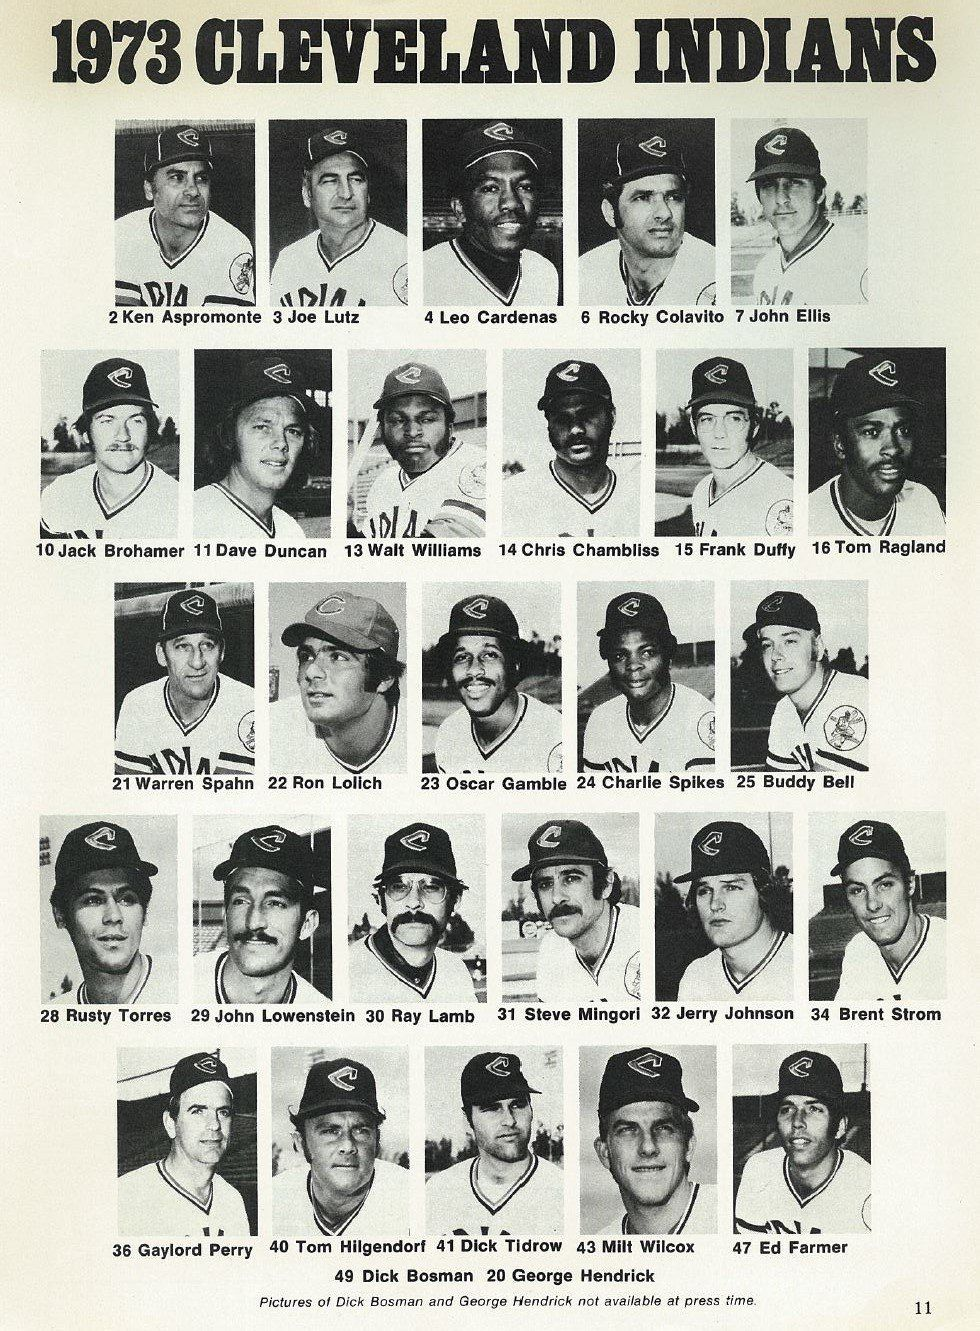 1973 Cleveland Indians